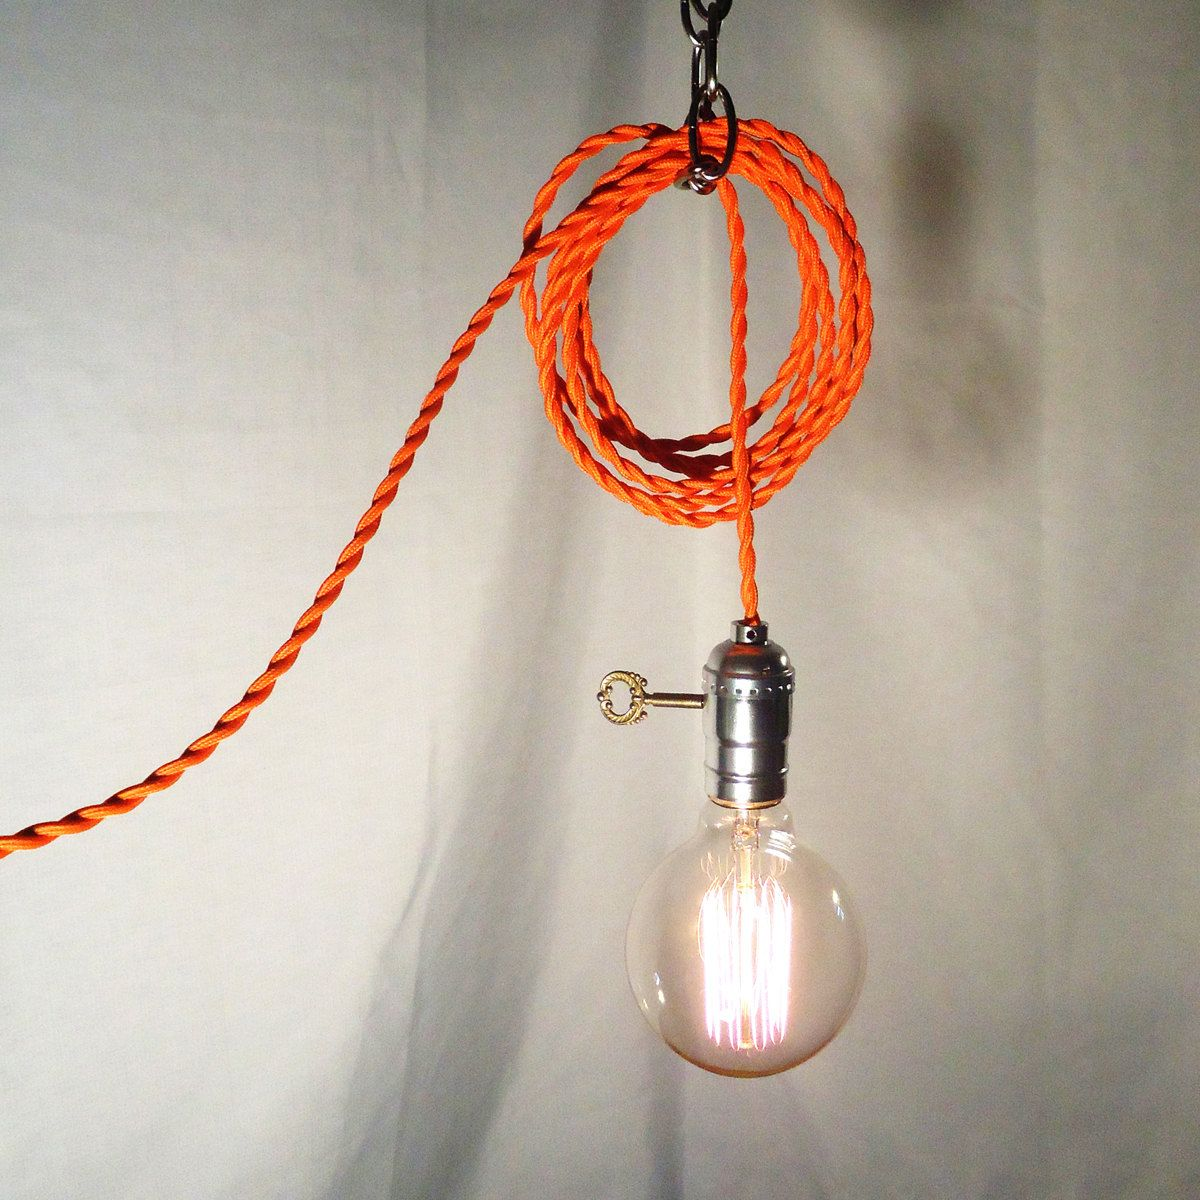 Hanging Light Bulbs From Cord Google Search Hanging Light